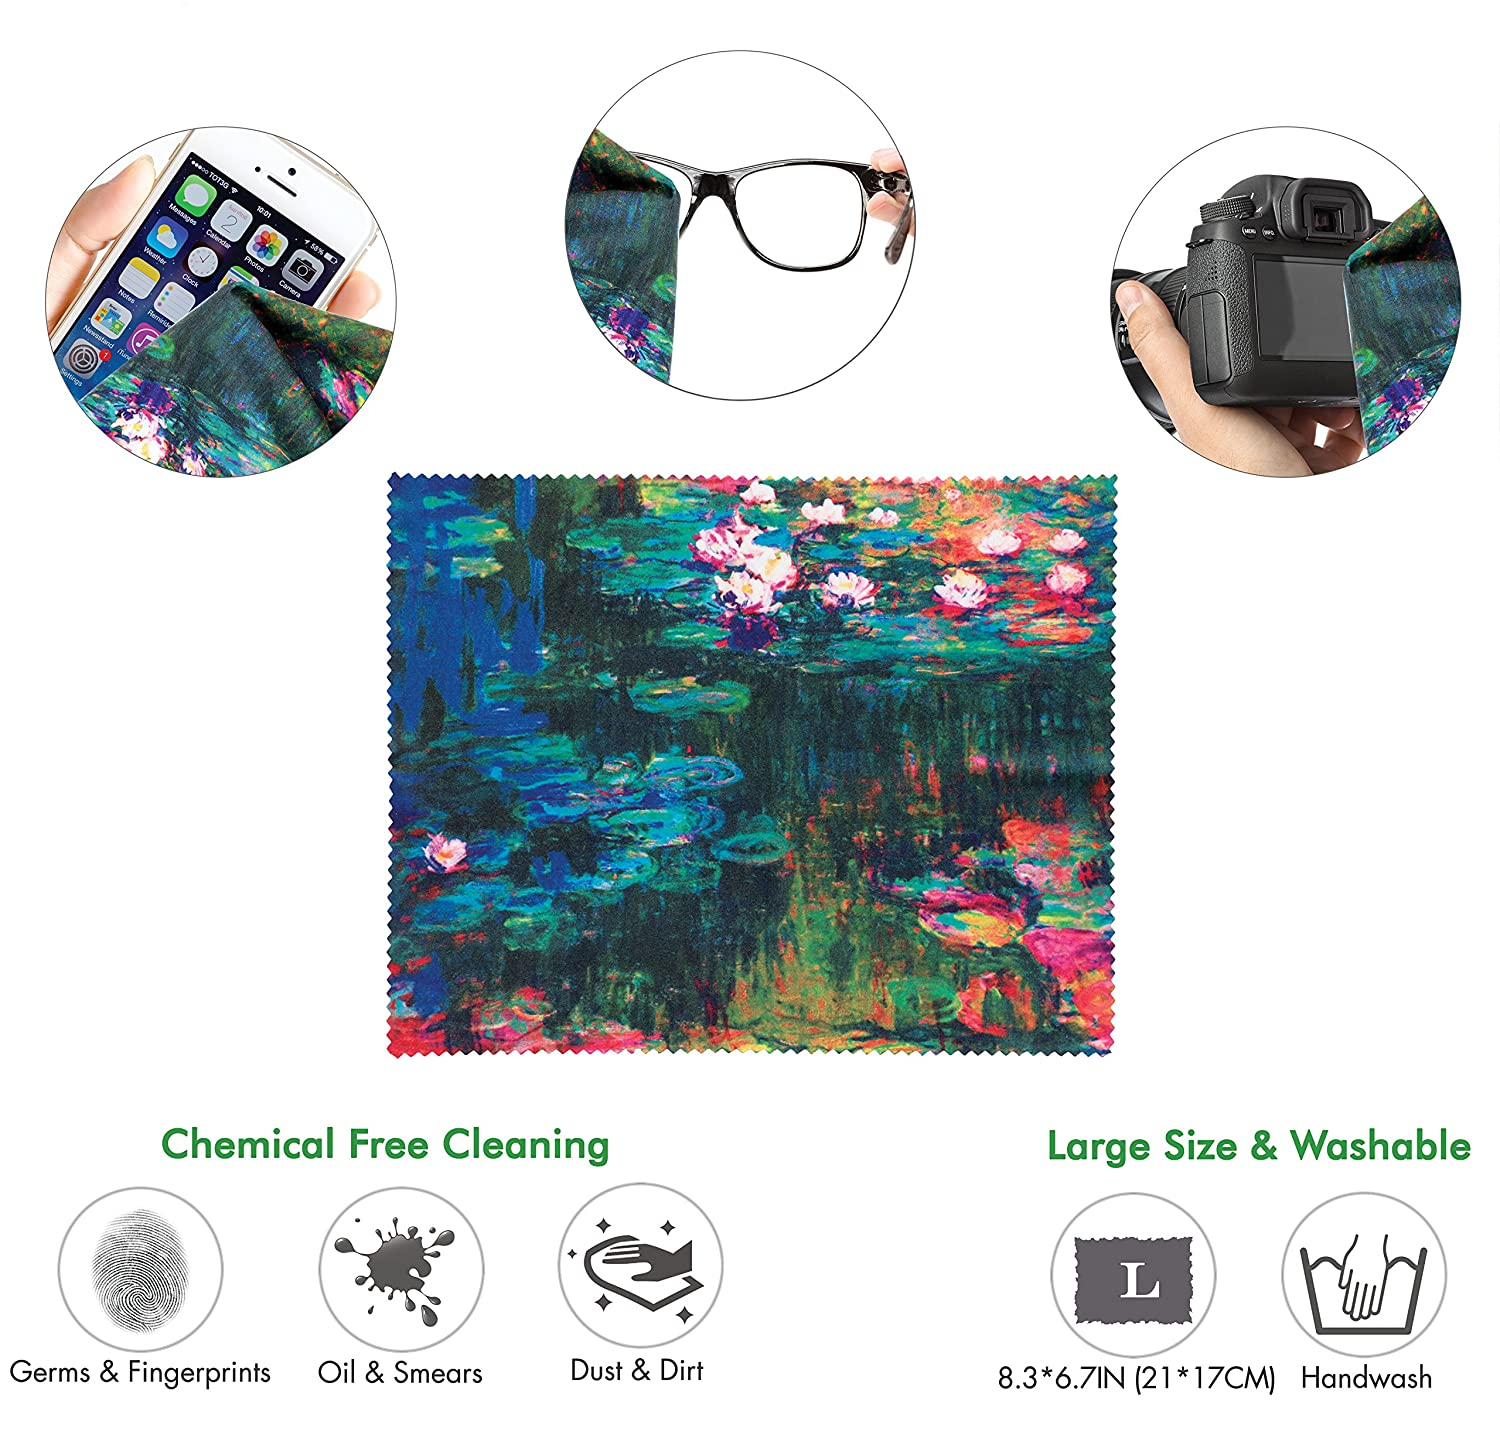 Matching Microfiber Cleaning Cloth for Glasses /& Screens Great for Gaming /& Work Round Large Mousing Area Van Gogh Starry Night Ergonomic Design Mouse Pad with Wrist Rest Hand Support